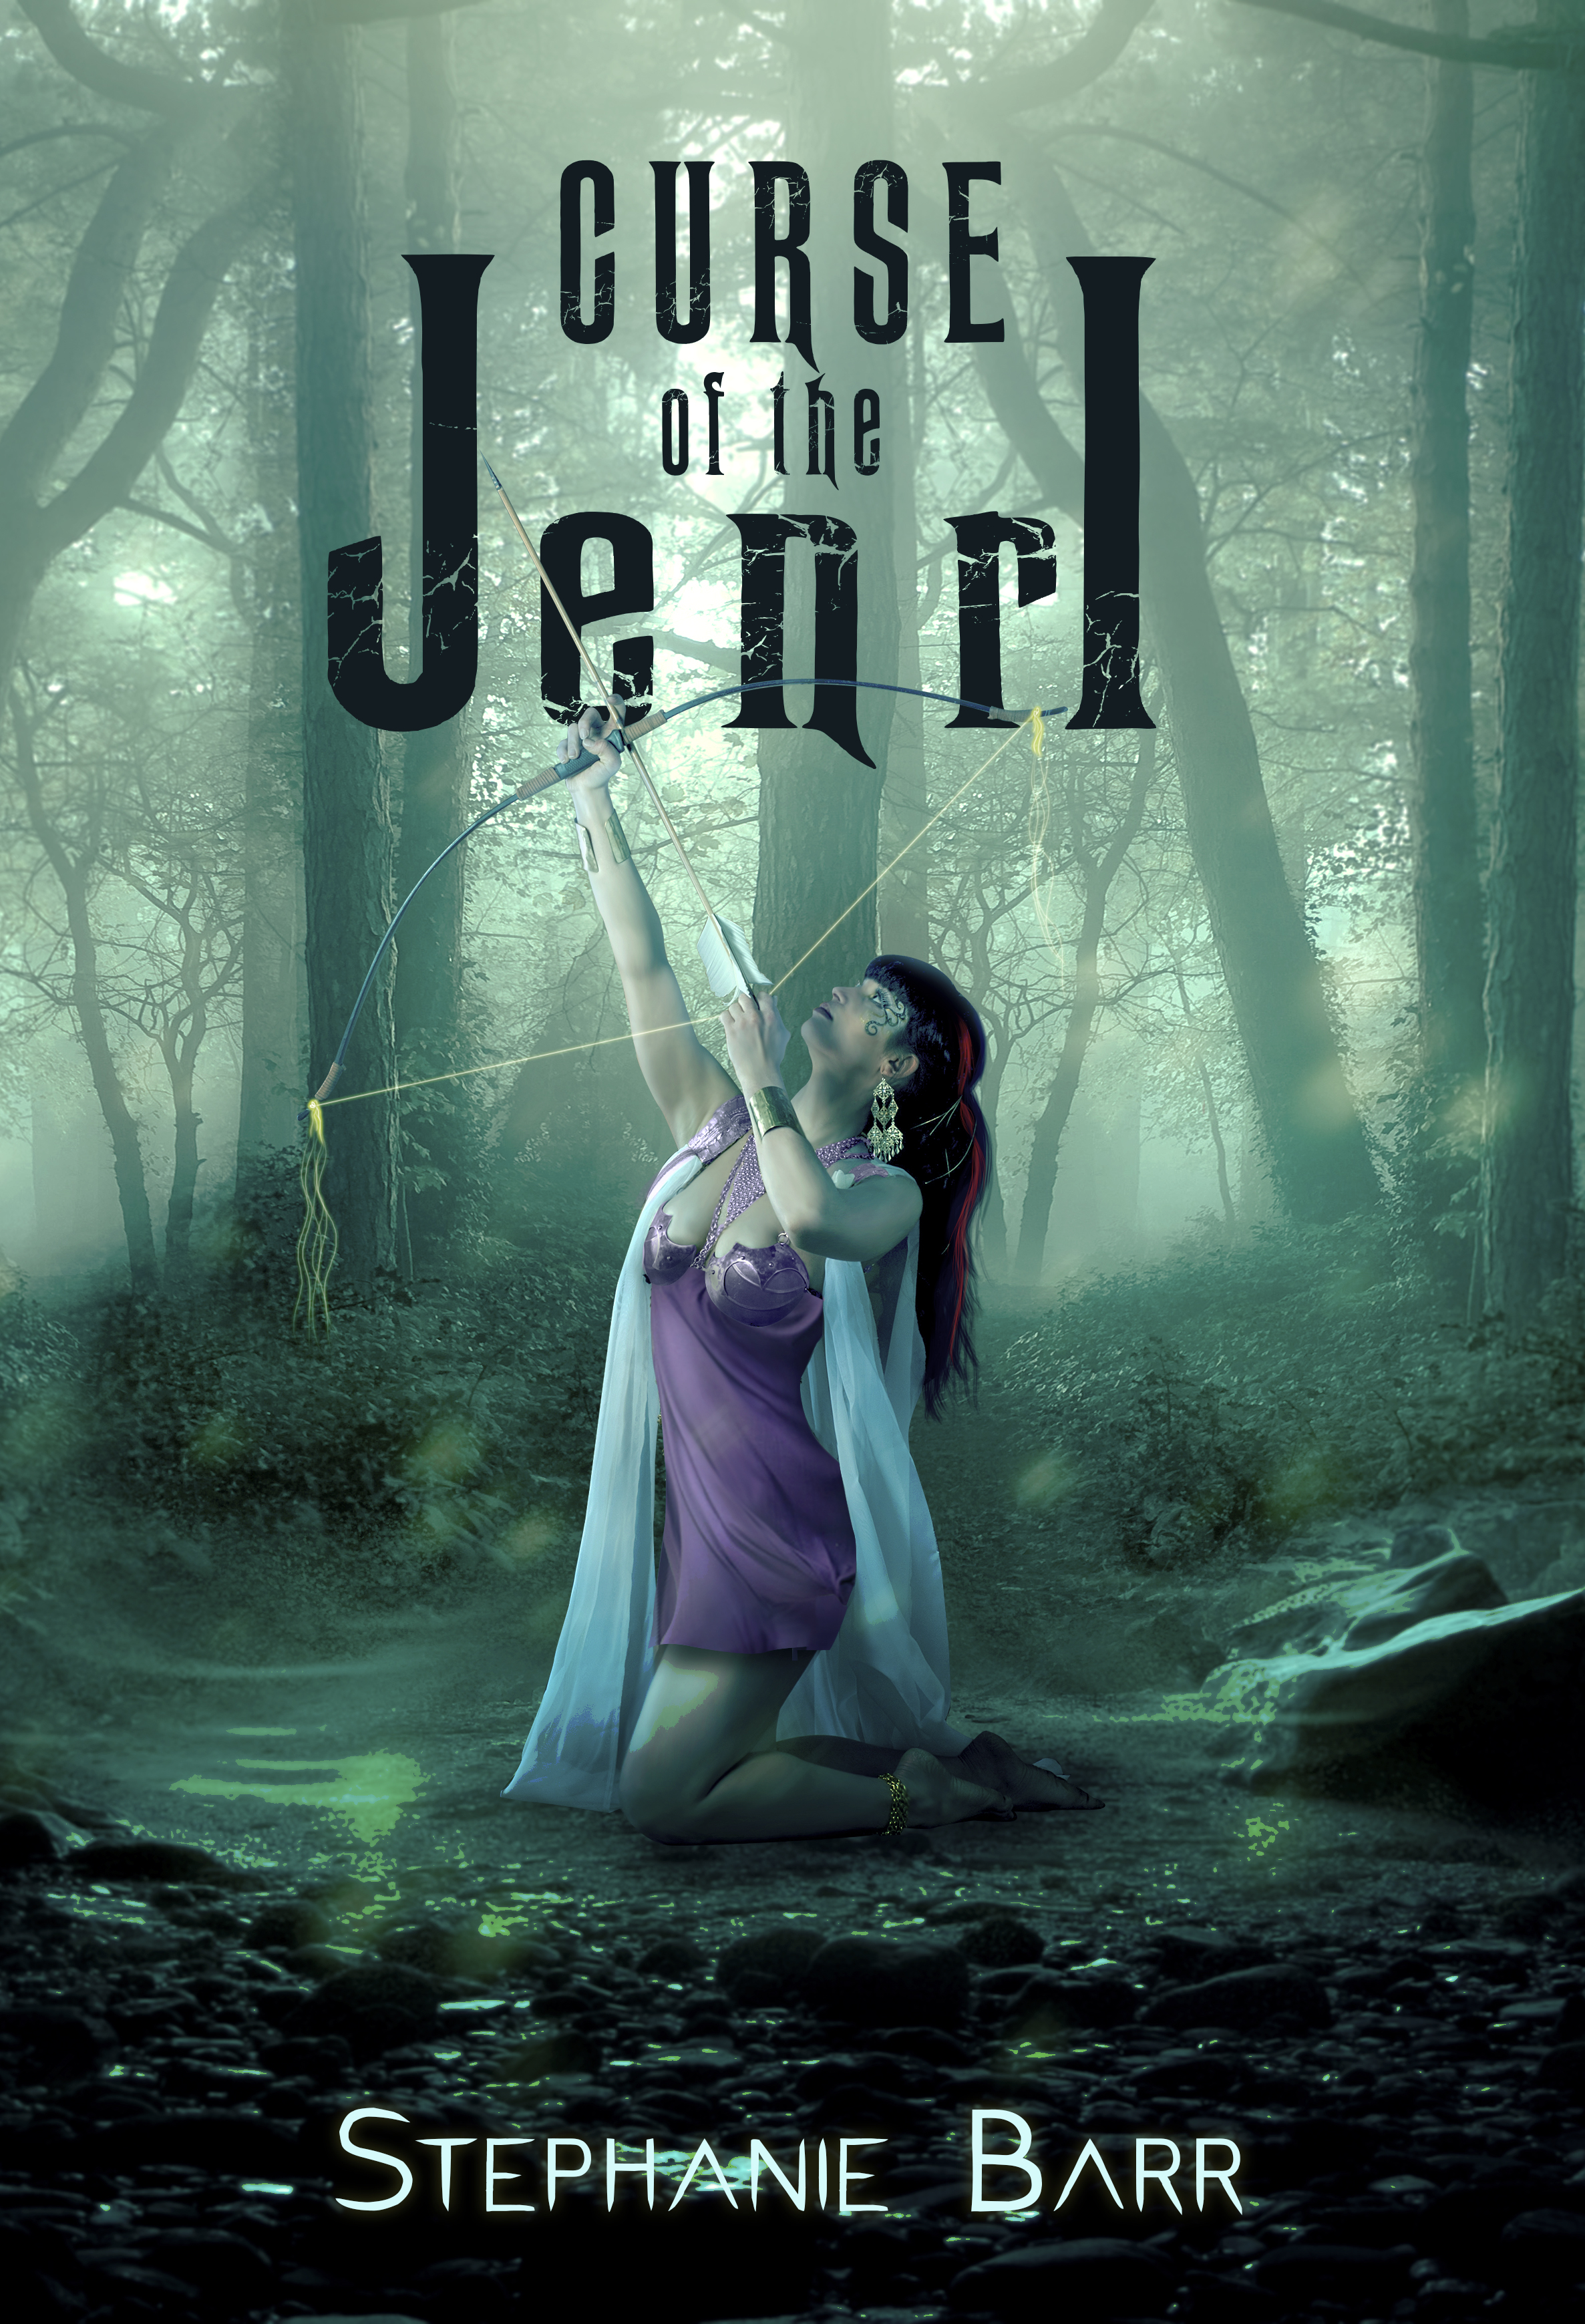 Curse of the Jenri - Stephanie Barr